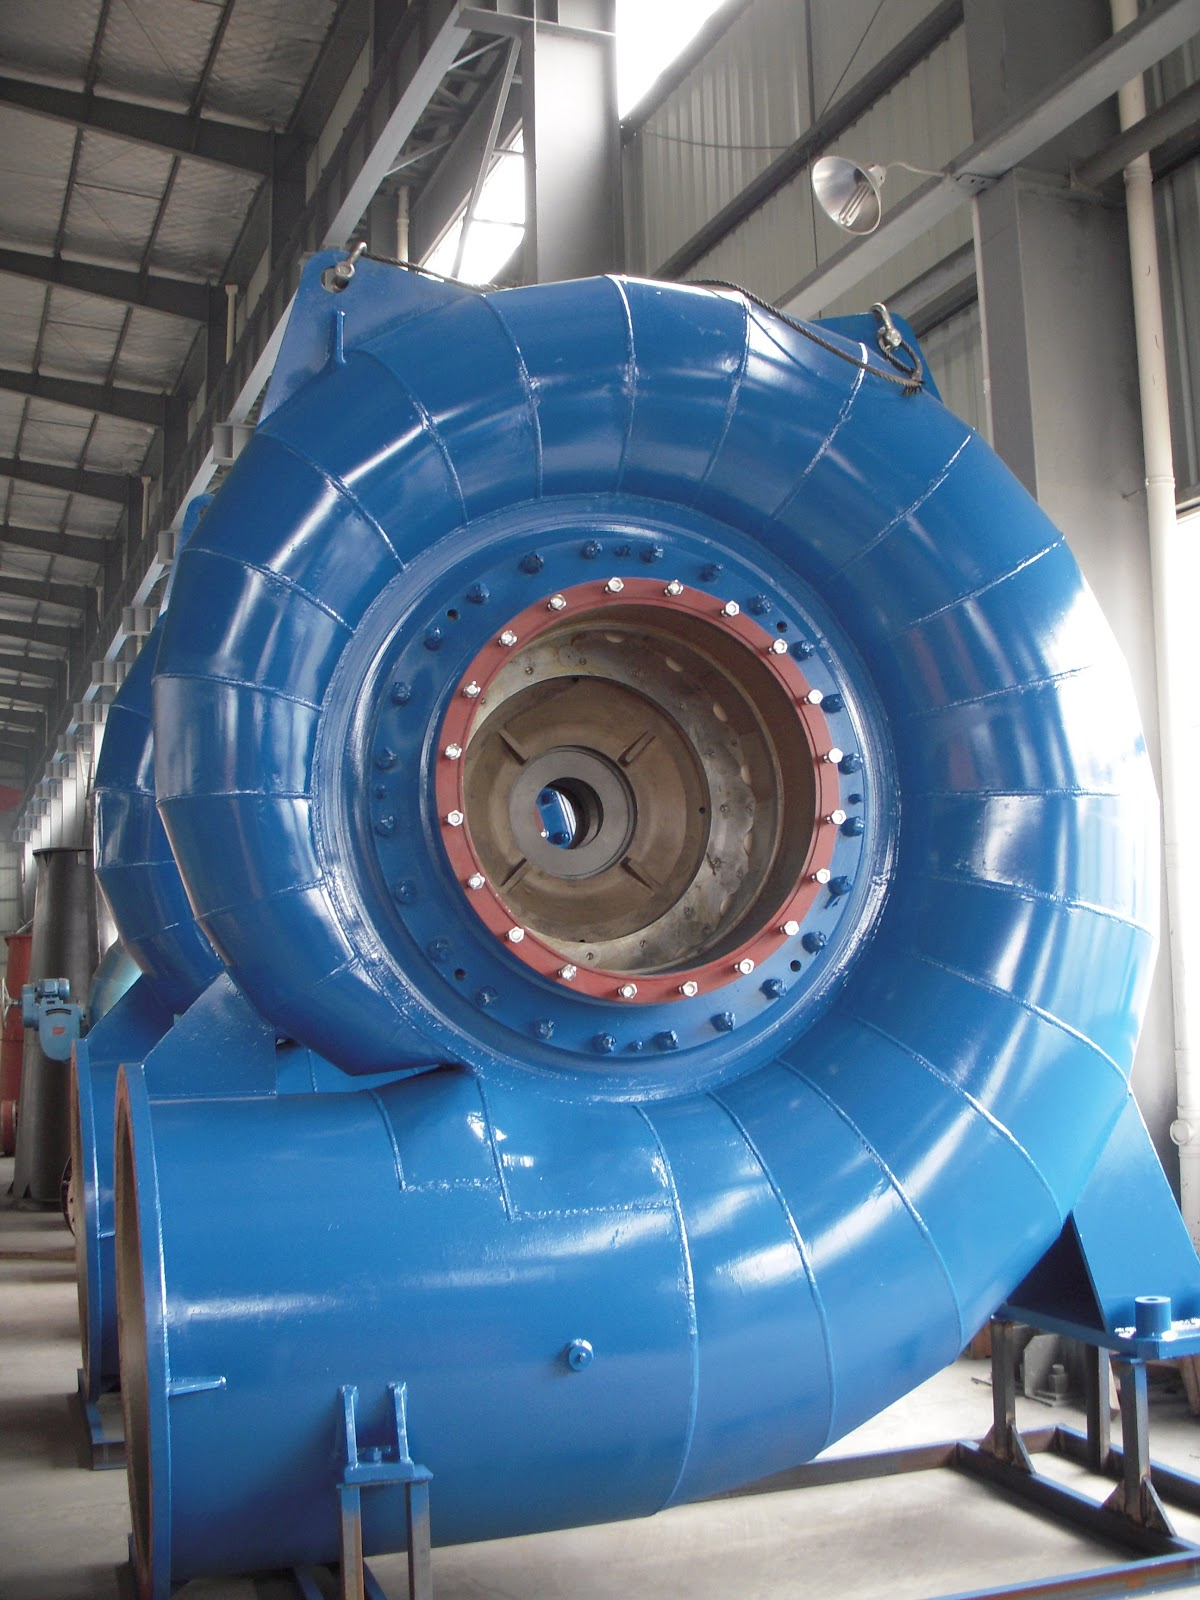 the hydraulic turbines A hydraulic drive system is a quasi-hydrostatic drive or transmission system that uses pressurized hydraulic fluid to power hydraulic machinerythe term hydrostatic refers to the transfer of energy from pressure differences, not from the kinetic energy of the flow.